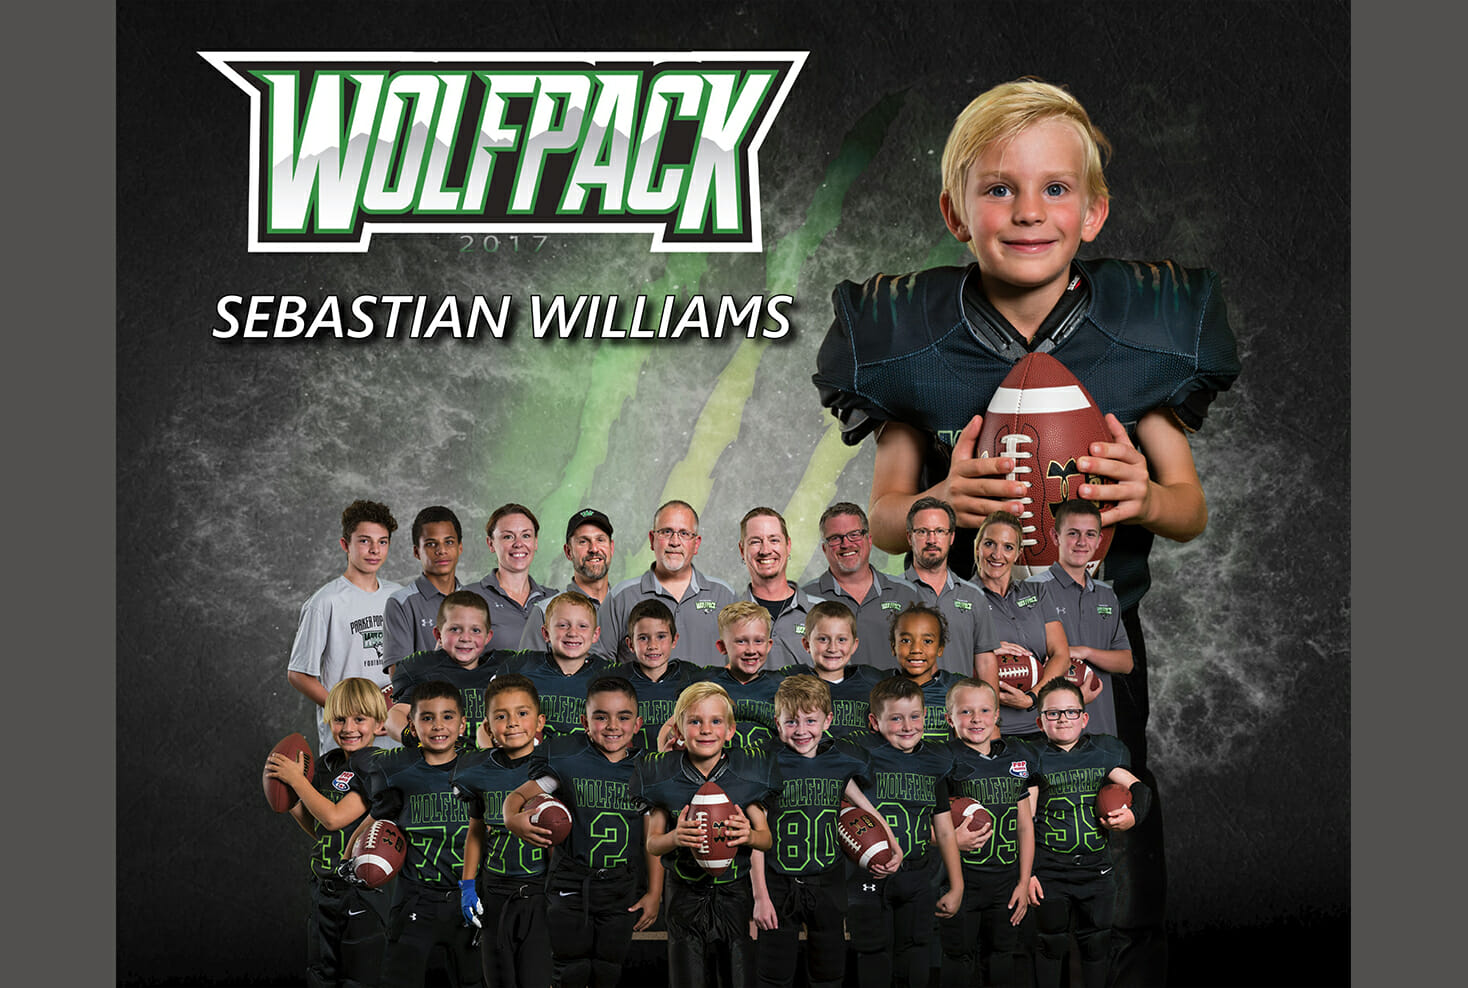 Parker Wolf Pack Football team and individual photo